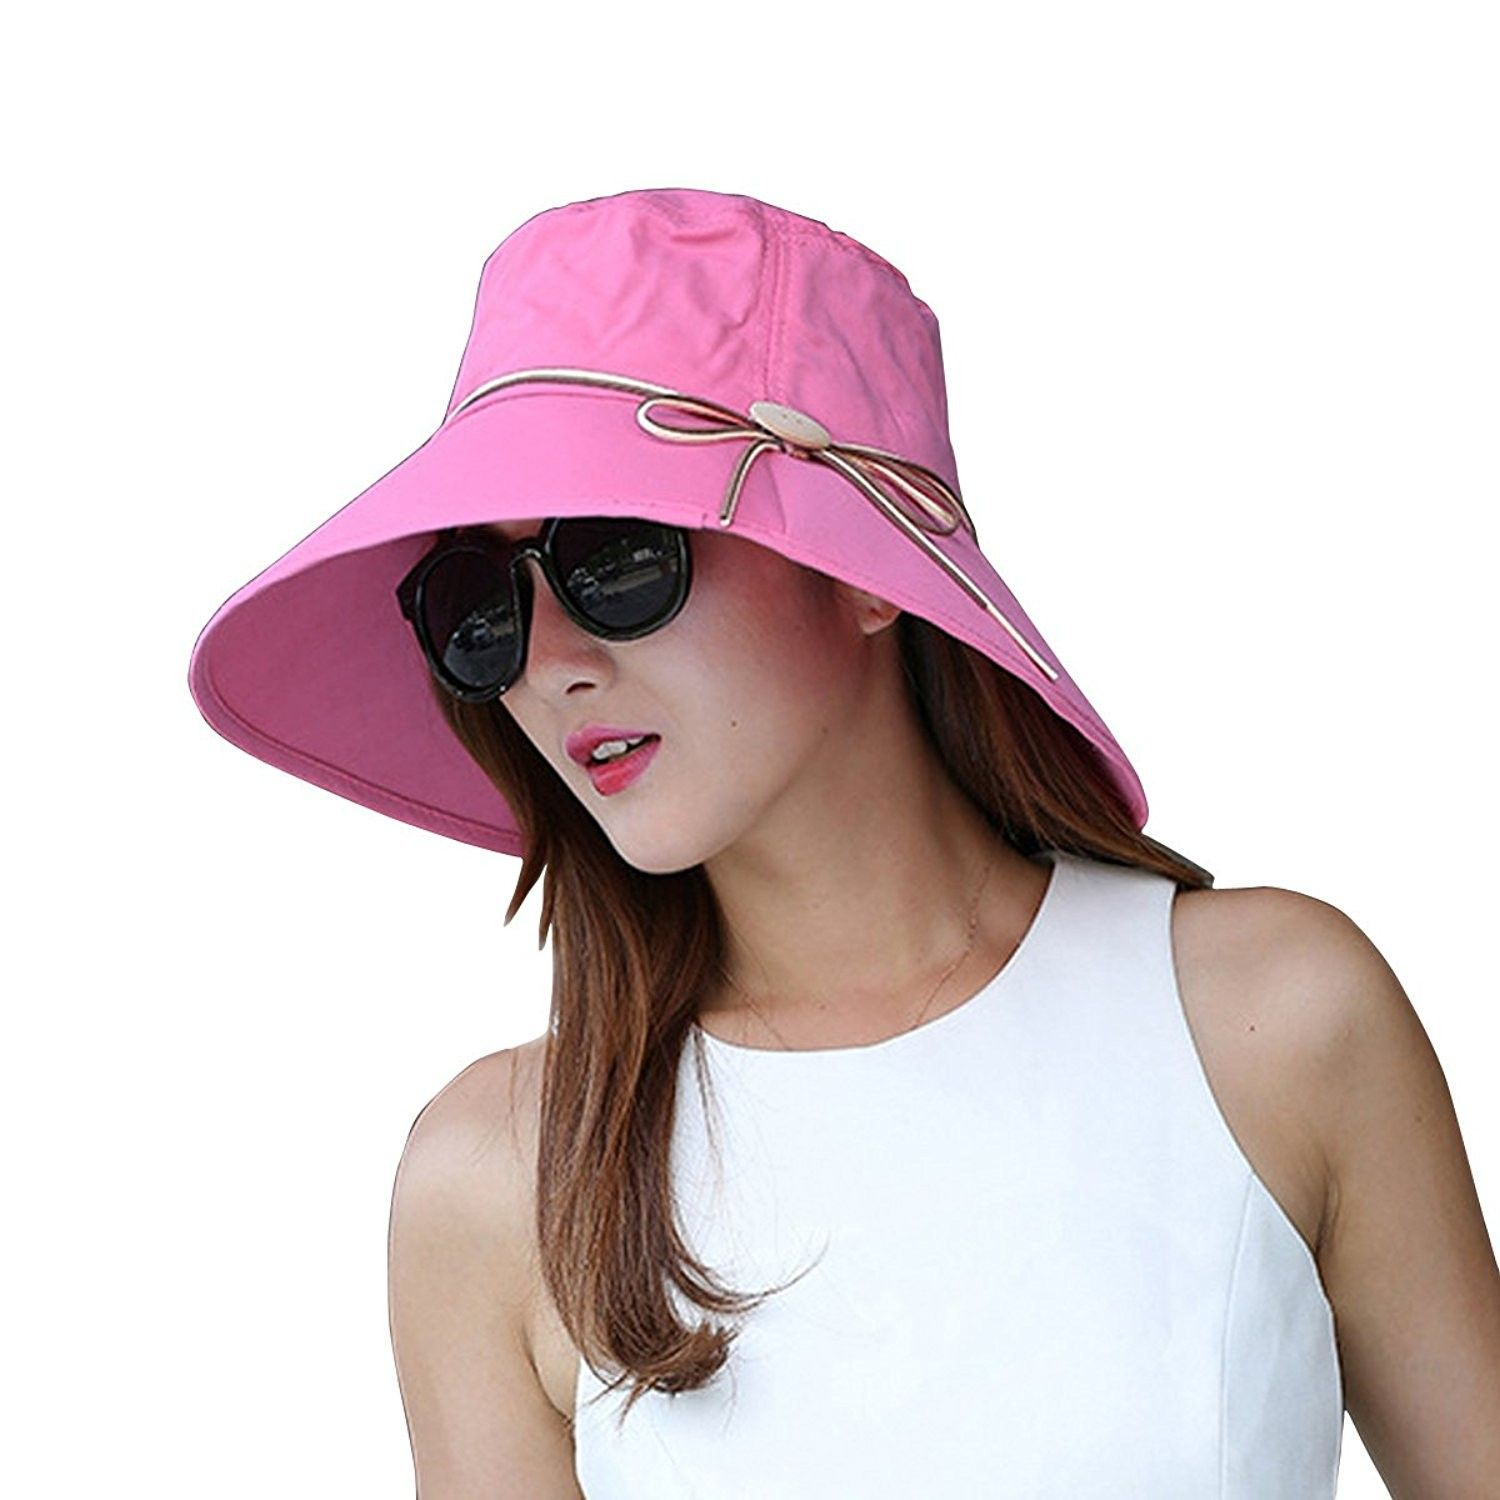 c55a5e23d Summer Wide Brim Sun Hats Foldable Beach Hat Visor Cloche UPF50+ UV ...